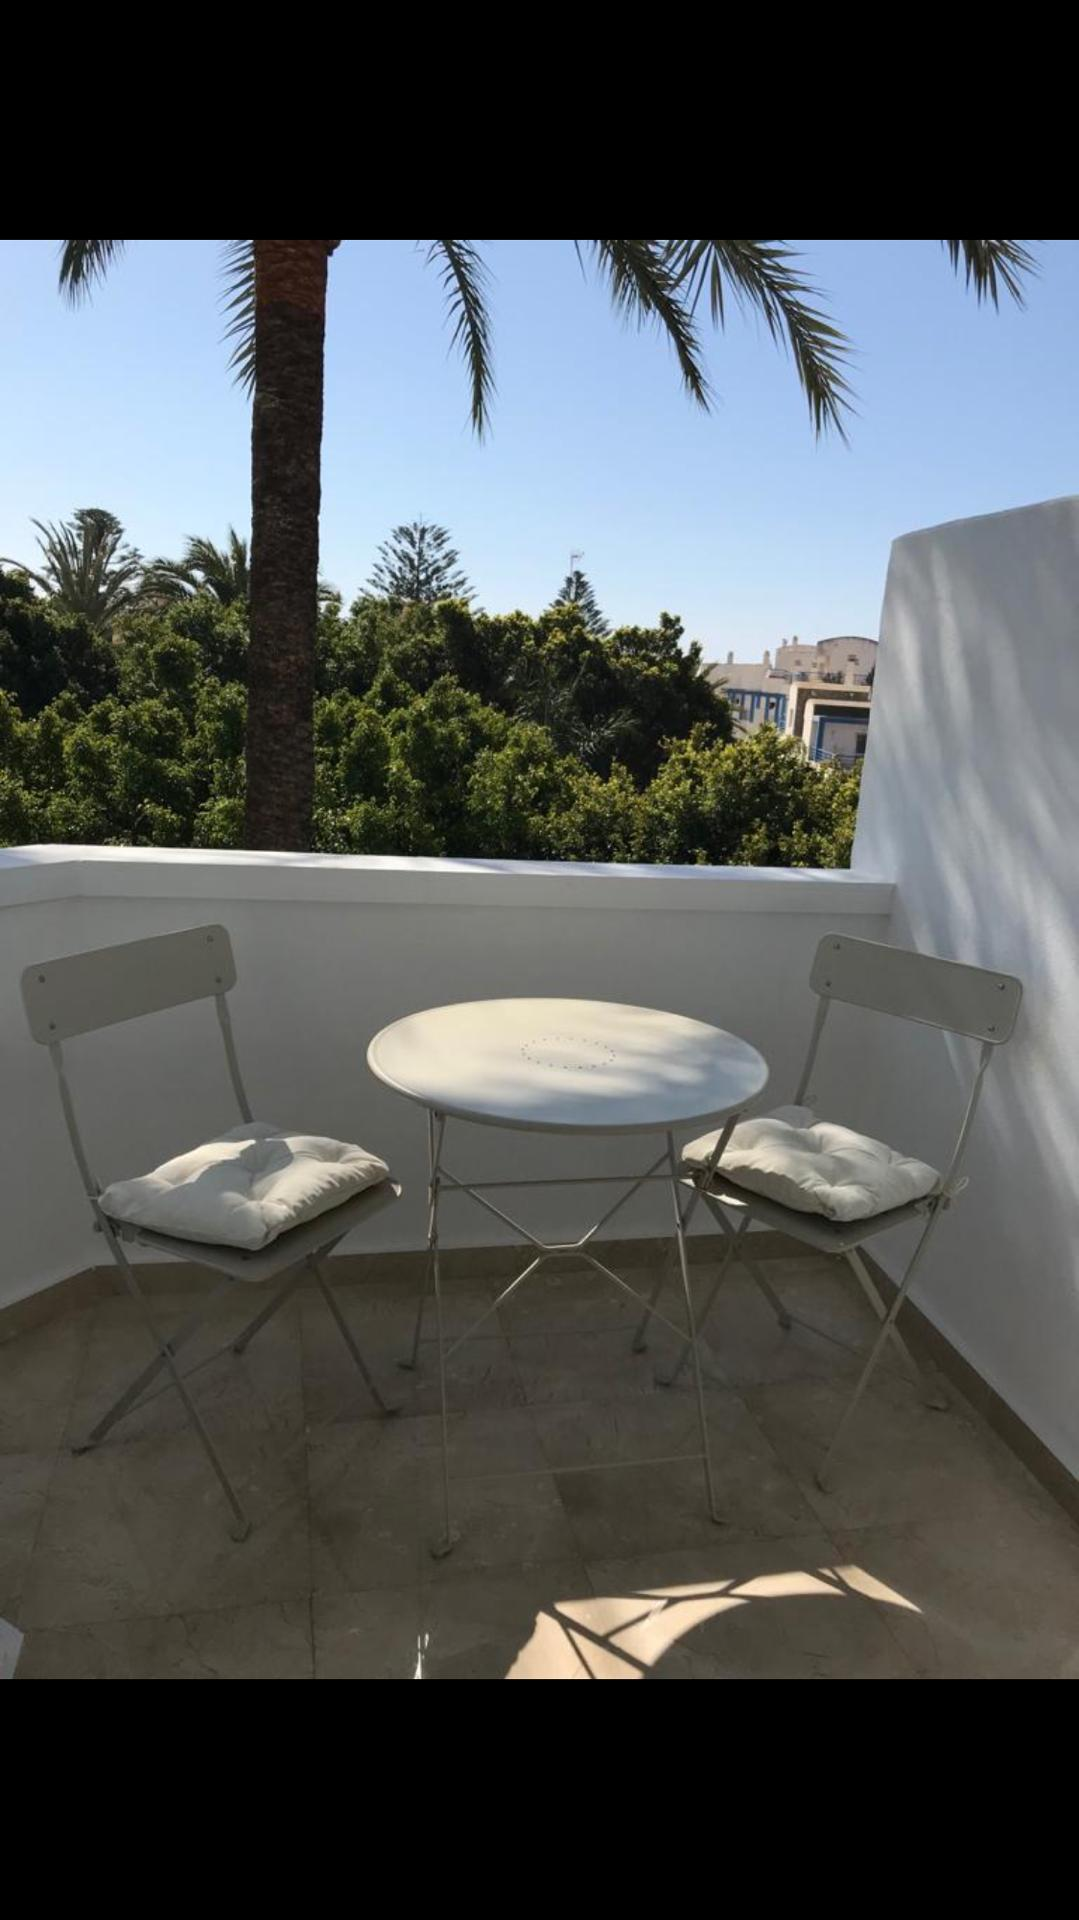 Two bedroom apartment in the port of Estepona near the beach - mibgroup.es